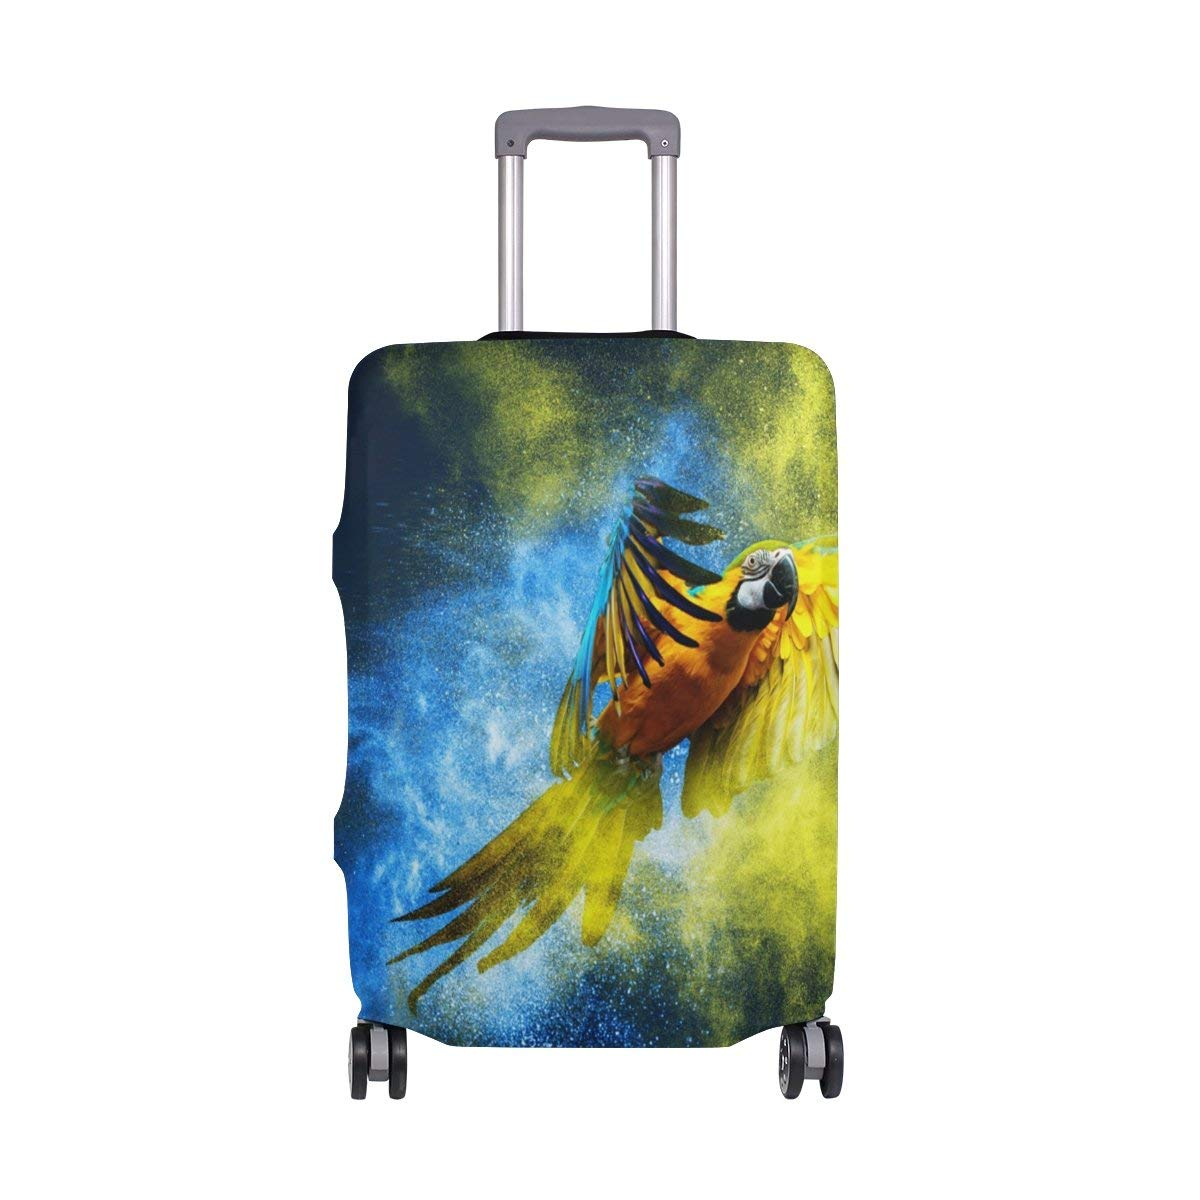 cb4617146a15 Cheap 27 Inch Suitcase, find 27 Inch Suitcase deals on line at ...